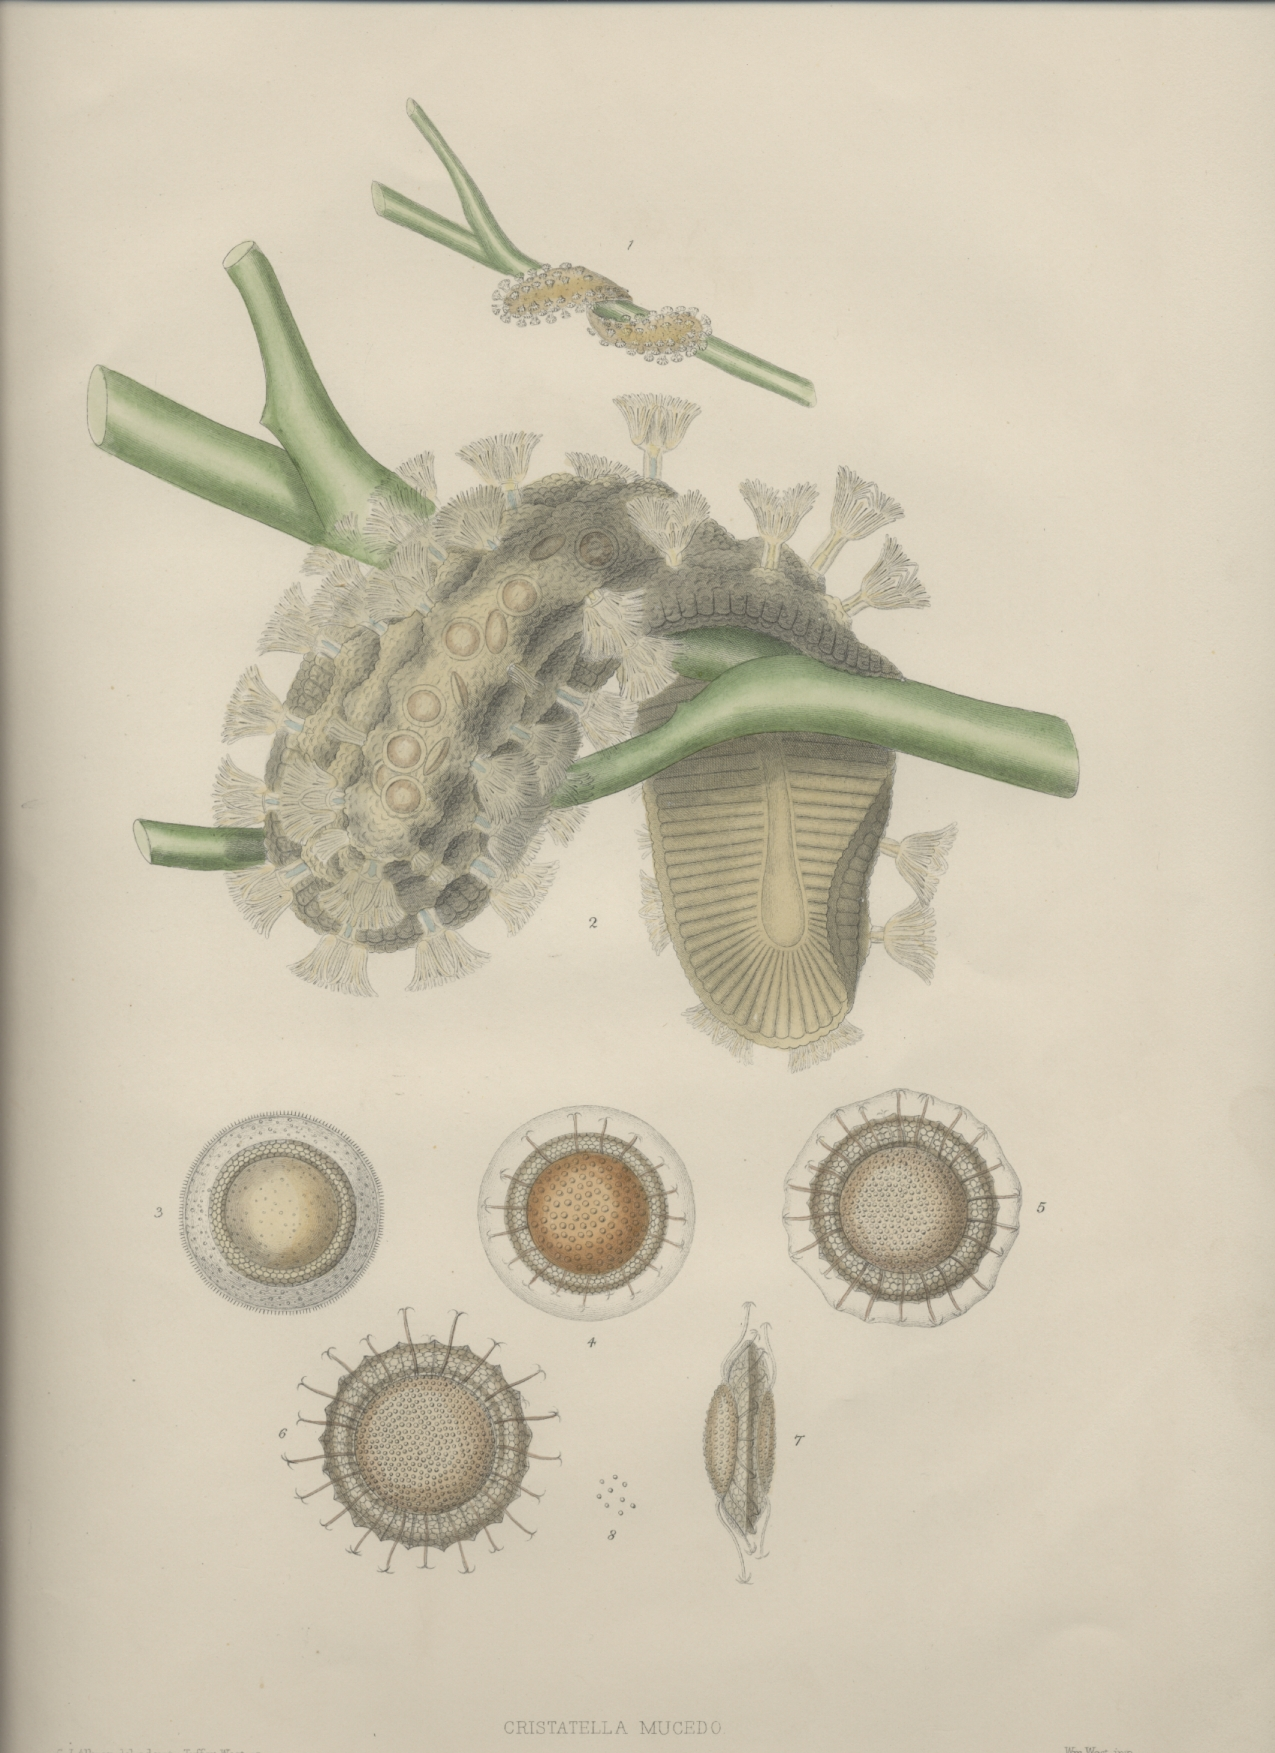 A monograph of the fresh-water polyzoa - plate 1